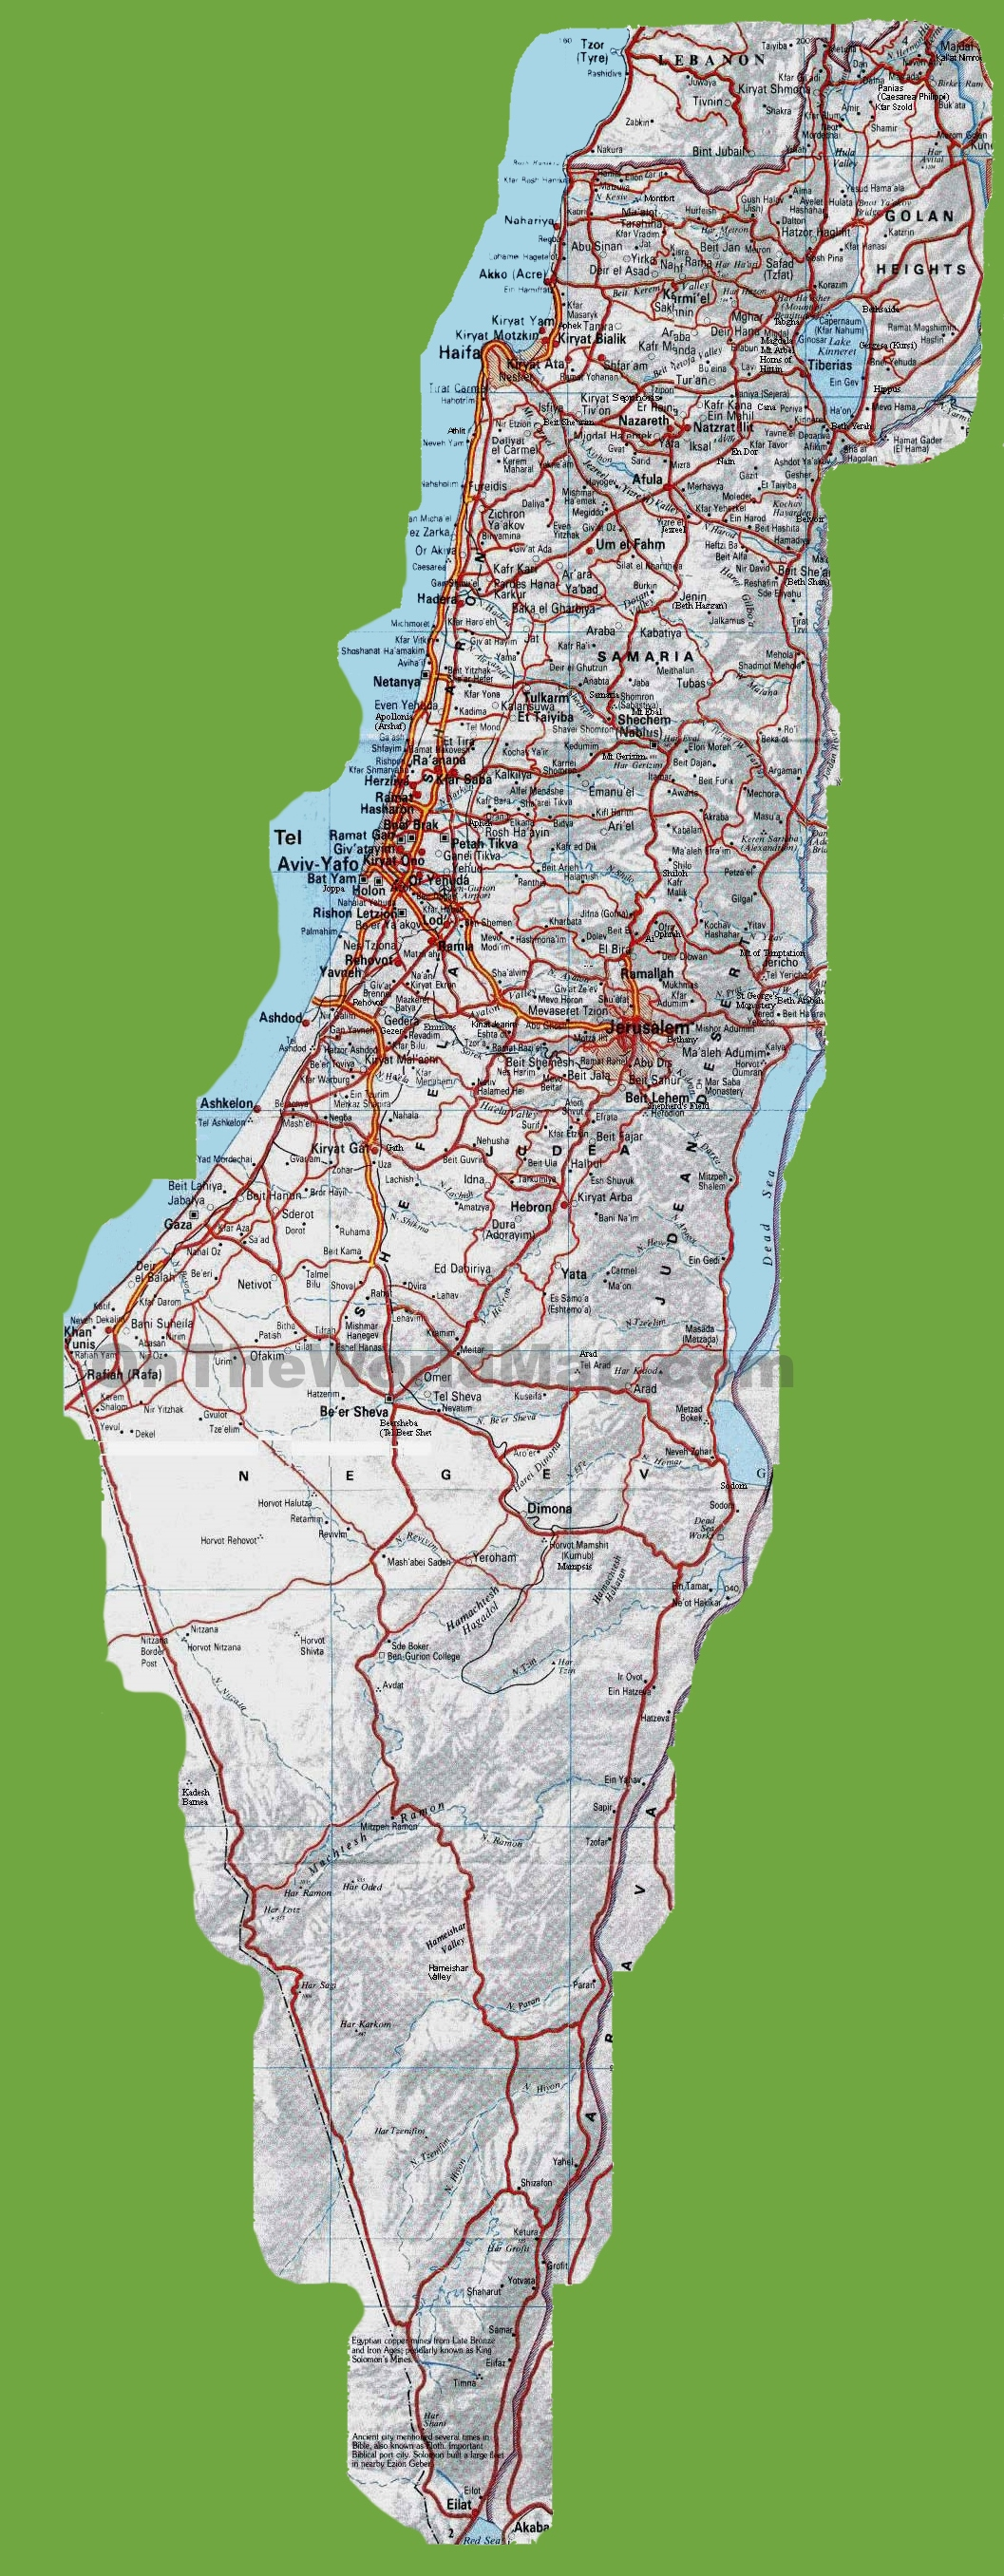 Israel Maps | Maps of Israel